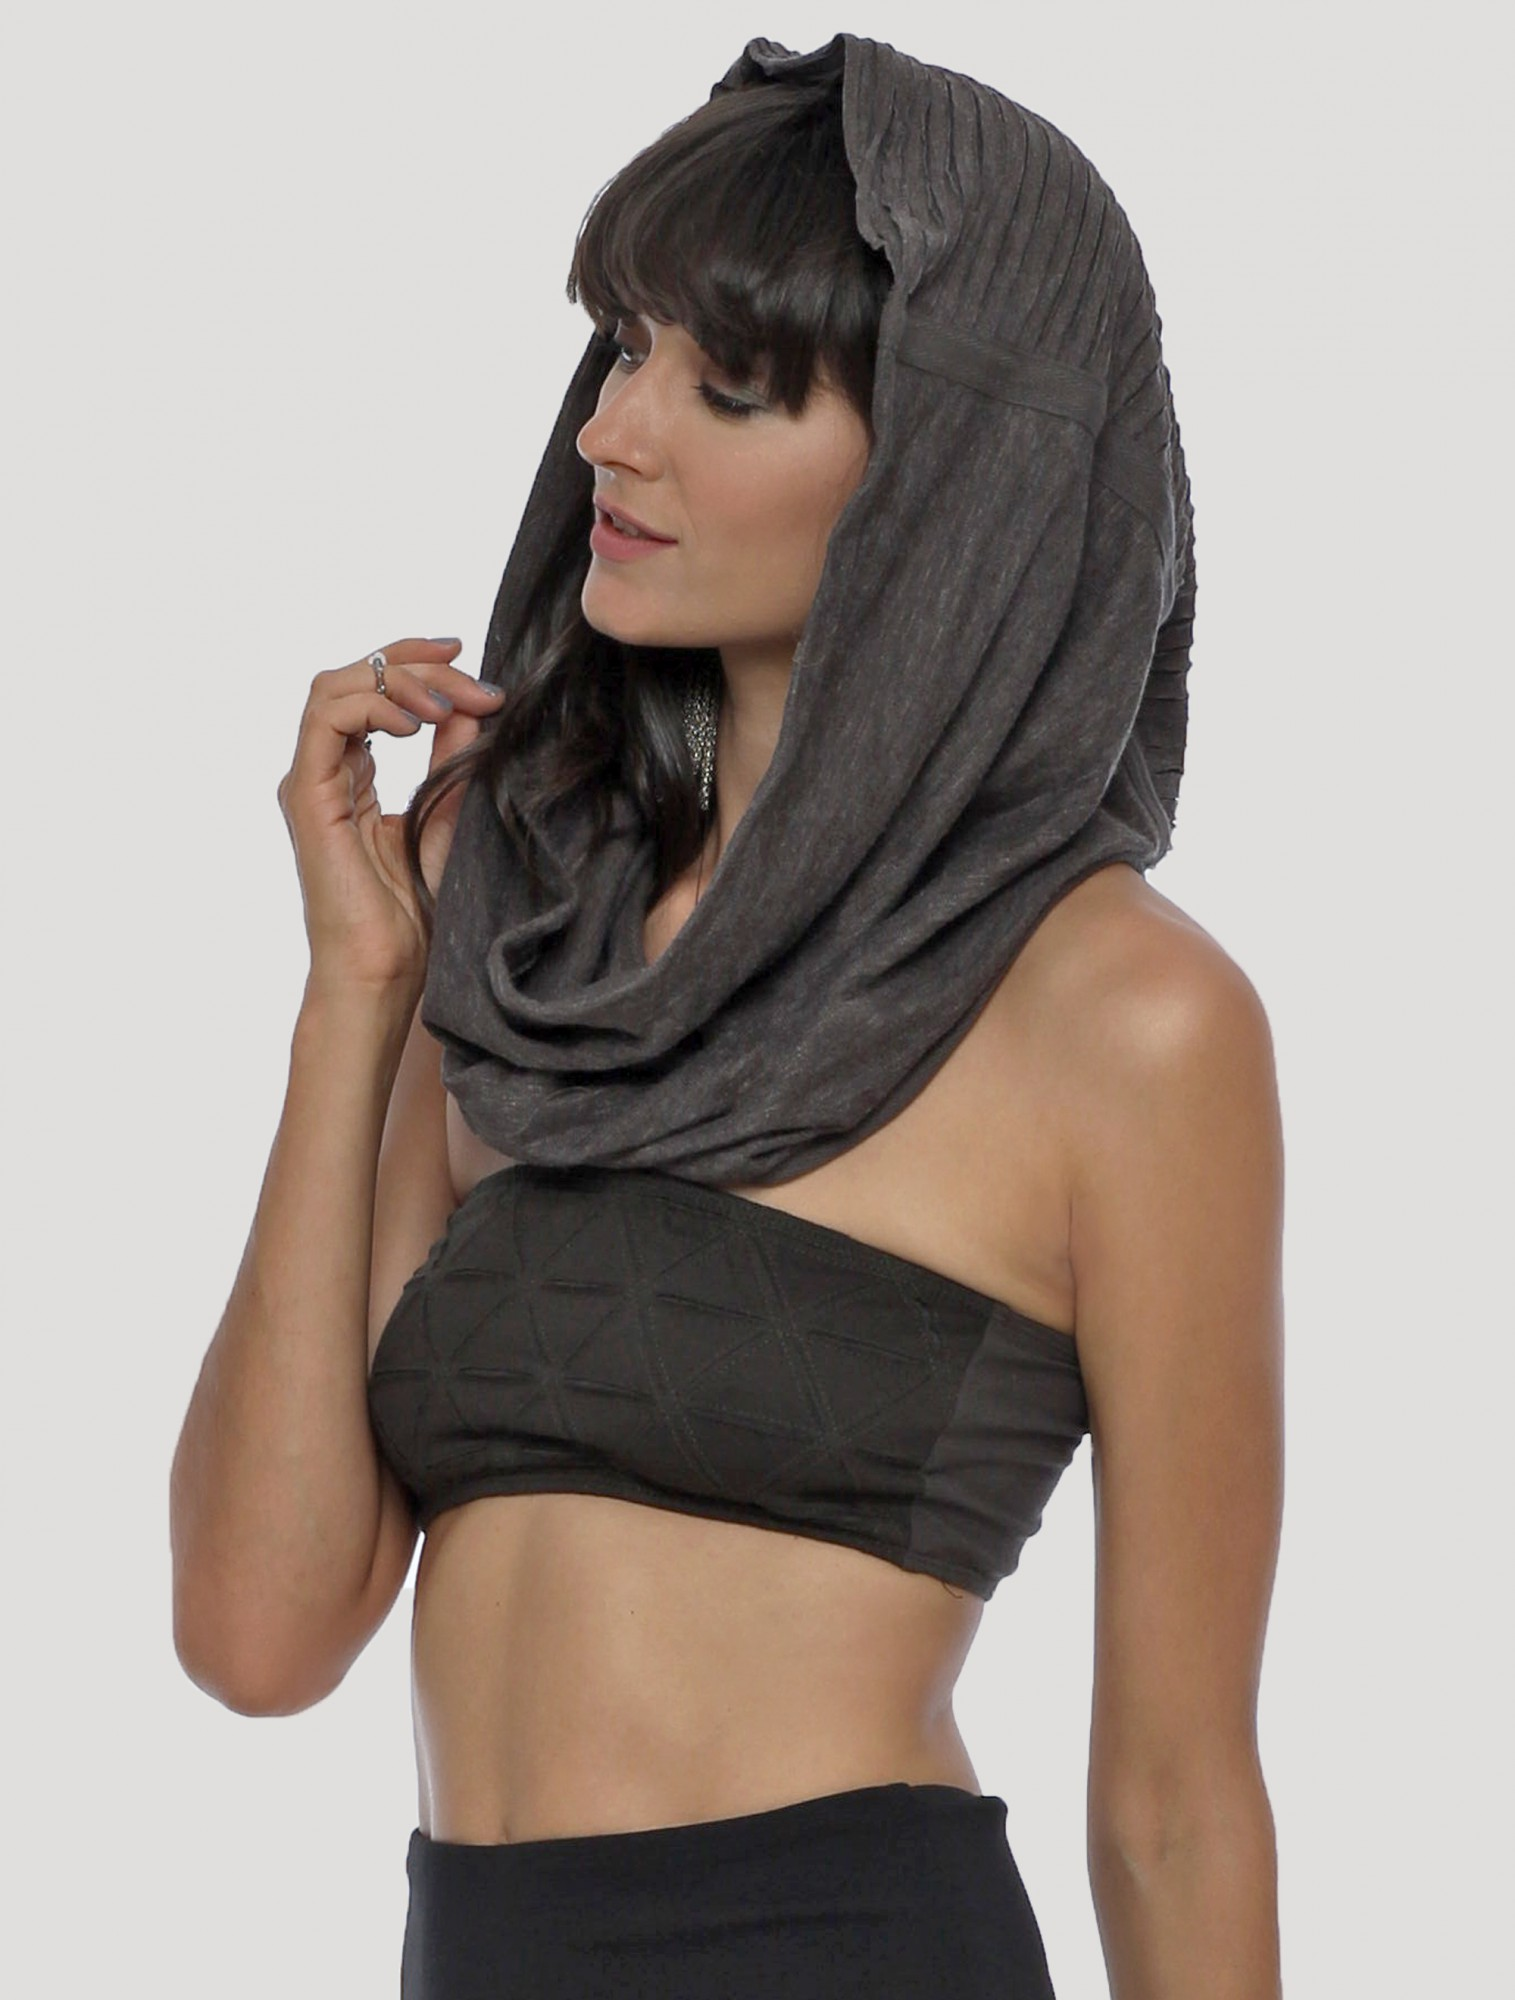 ""\""""Straps"""" hooded neck warmer, Charcoal""1515|2000|?|en|2|45452acca4fe23072a4ce548d376f8ea|False|UNLIKELY|0.2908700406551361